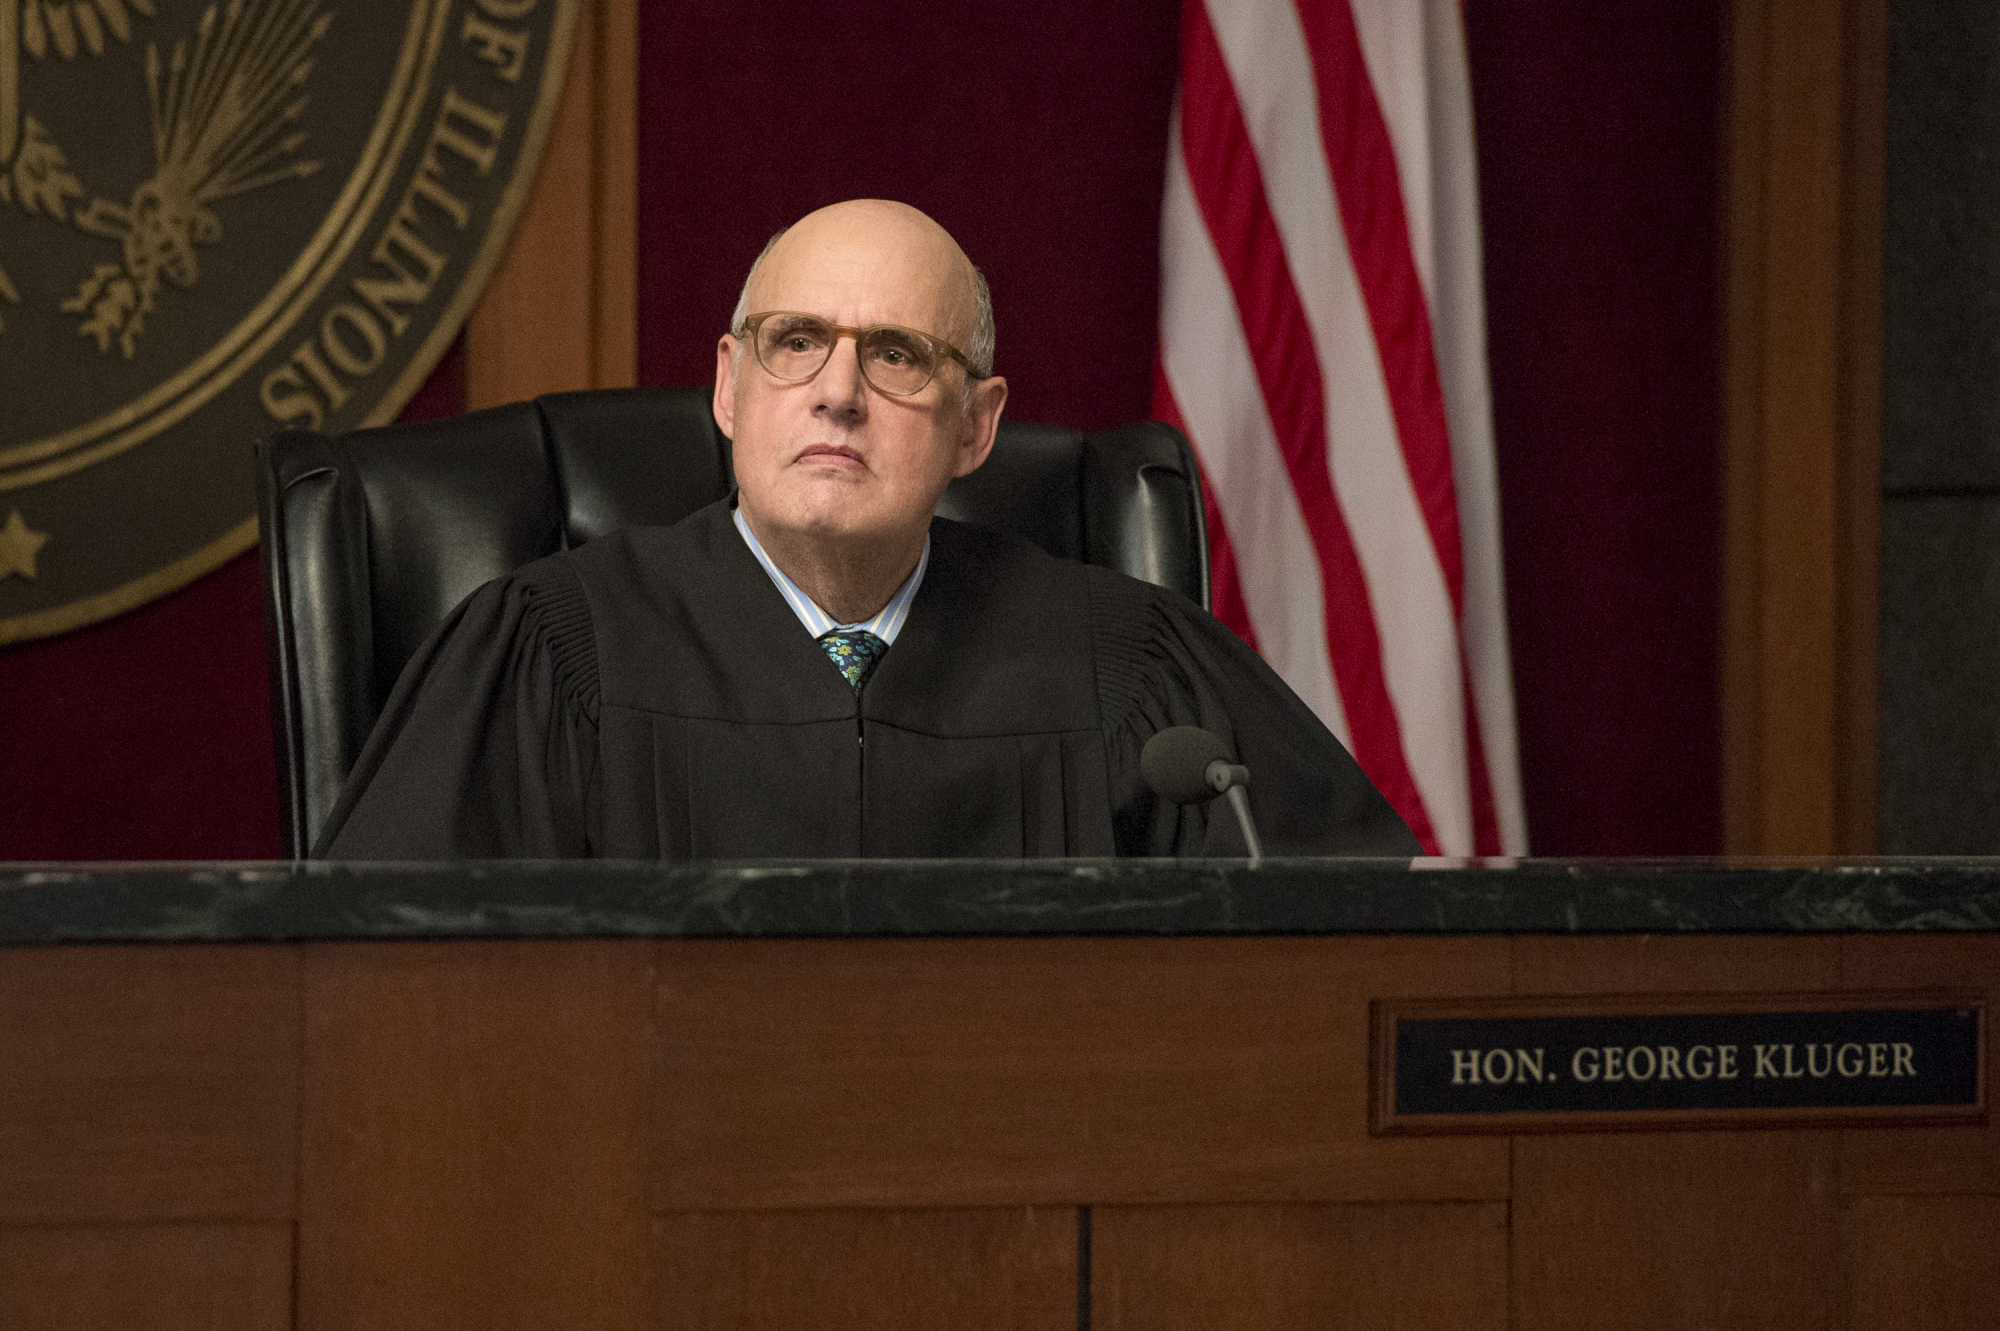 Jeffrey Tambor as Judge Kluger